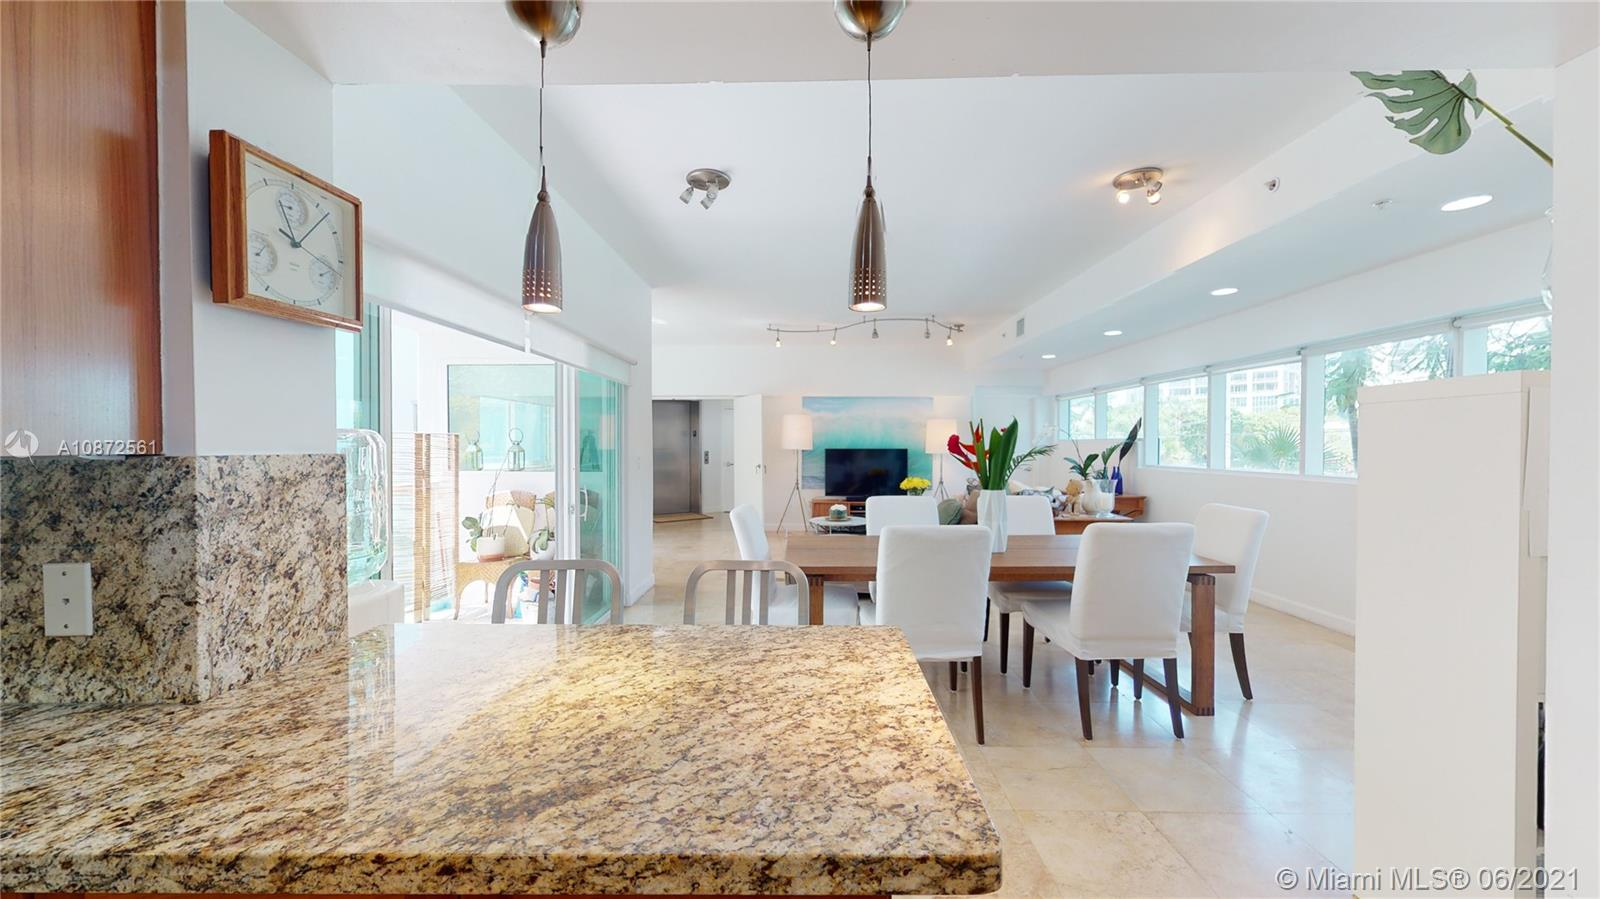 2699  Tigertail Ave #24 For Sale A10872561, FL